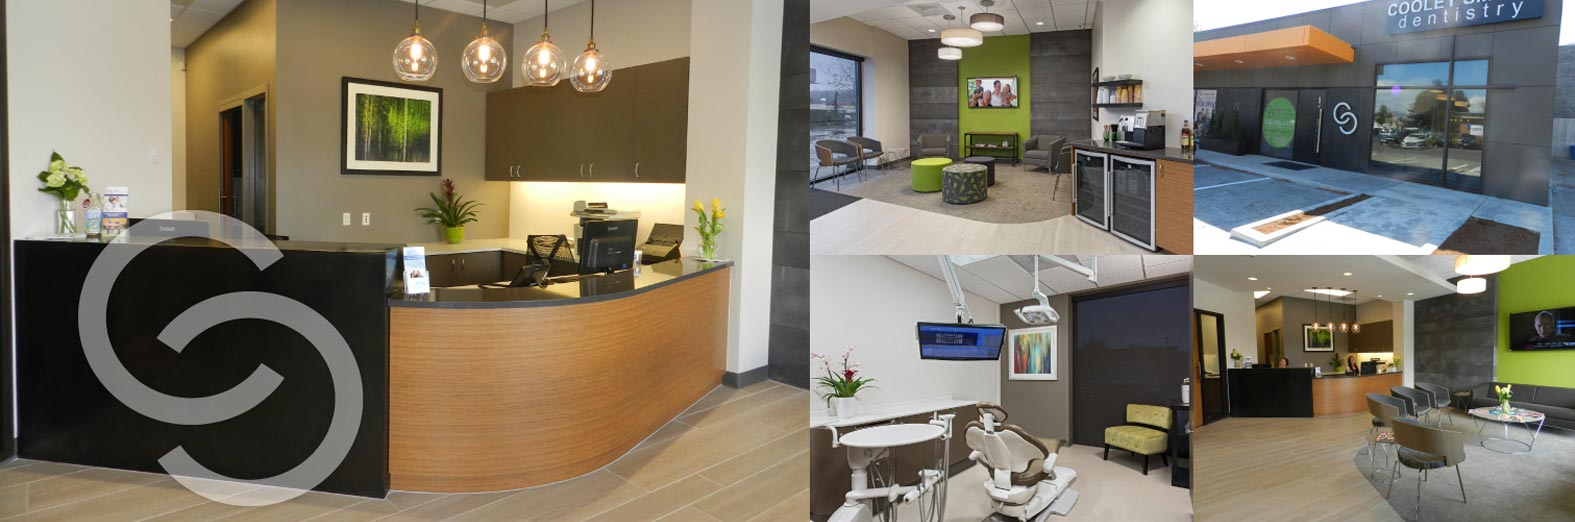 Collage showing front desk, lobby, and operatories of Cooley Smiles in Kenmore, WA